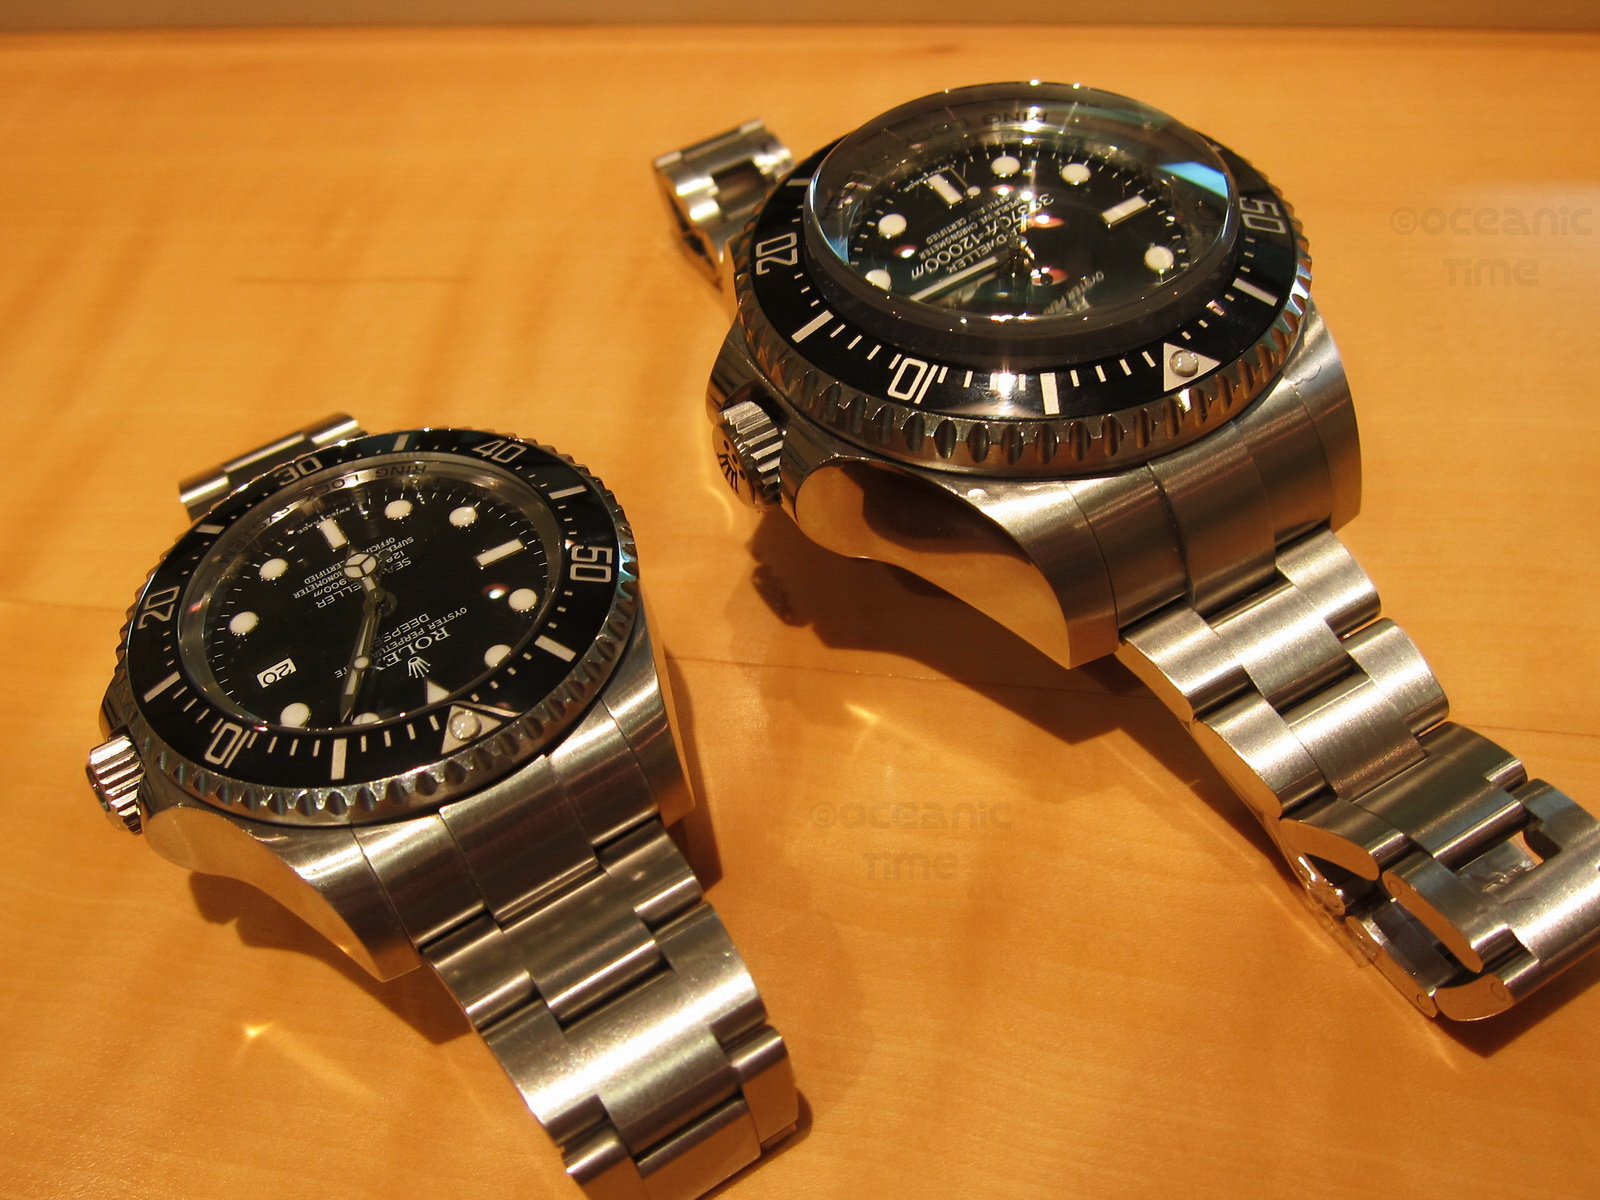 Rolex Sea Dweller Deepsea Challenge 10 908 Meters 35 787 Ft Below